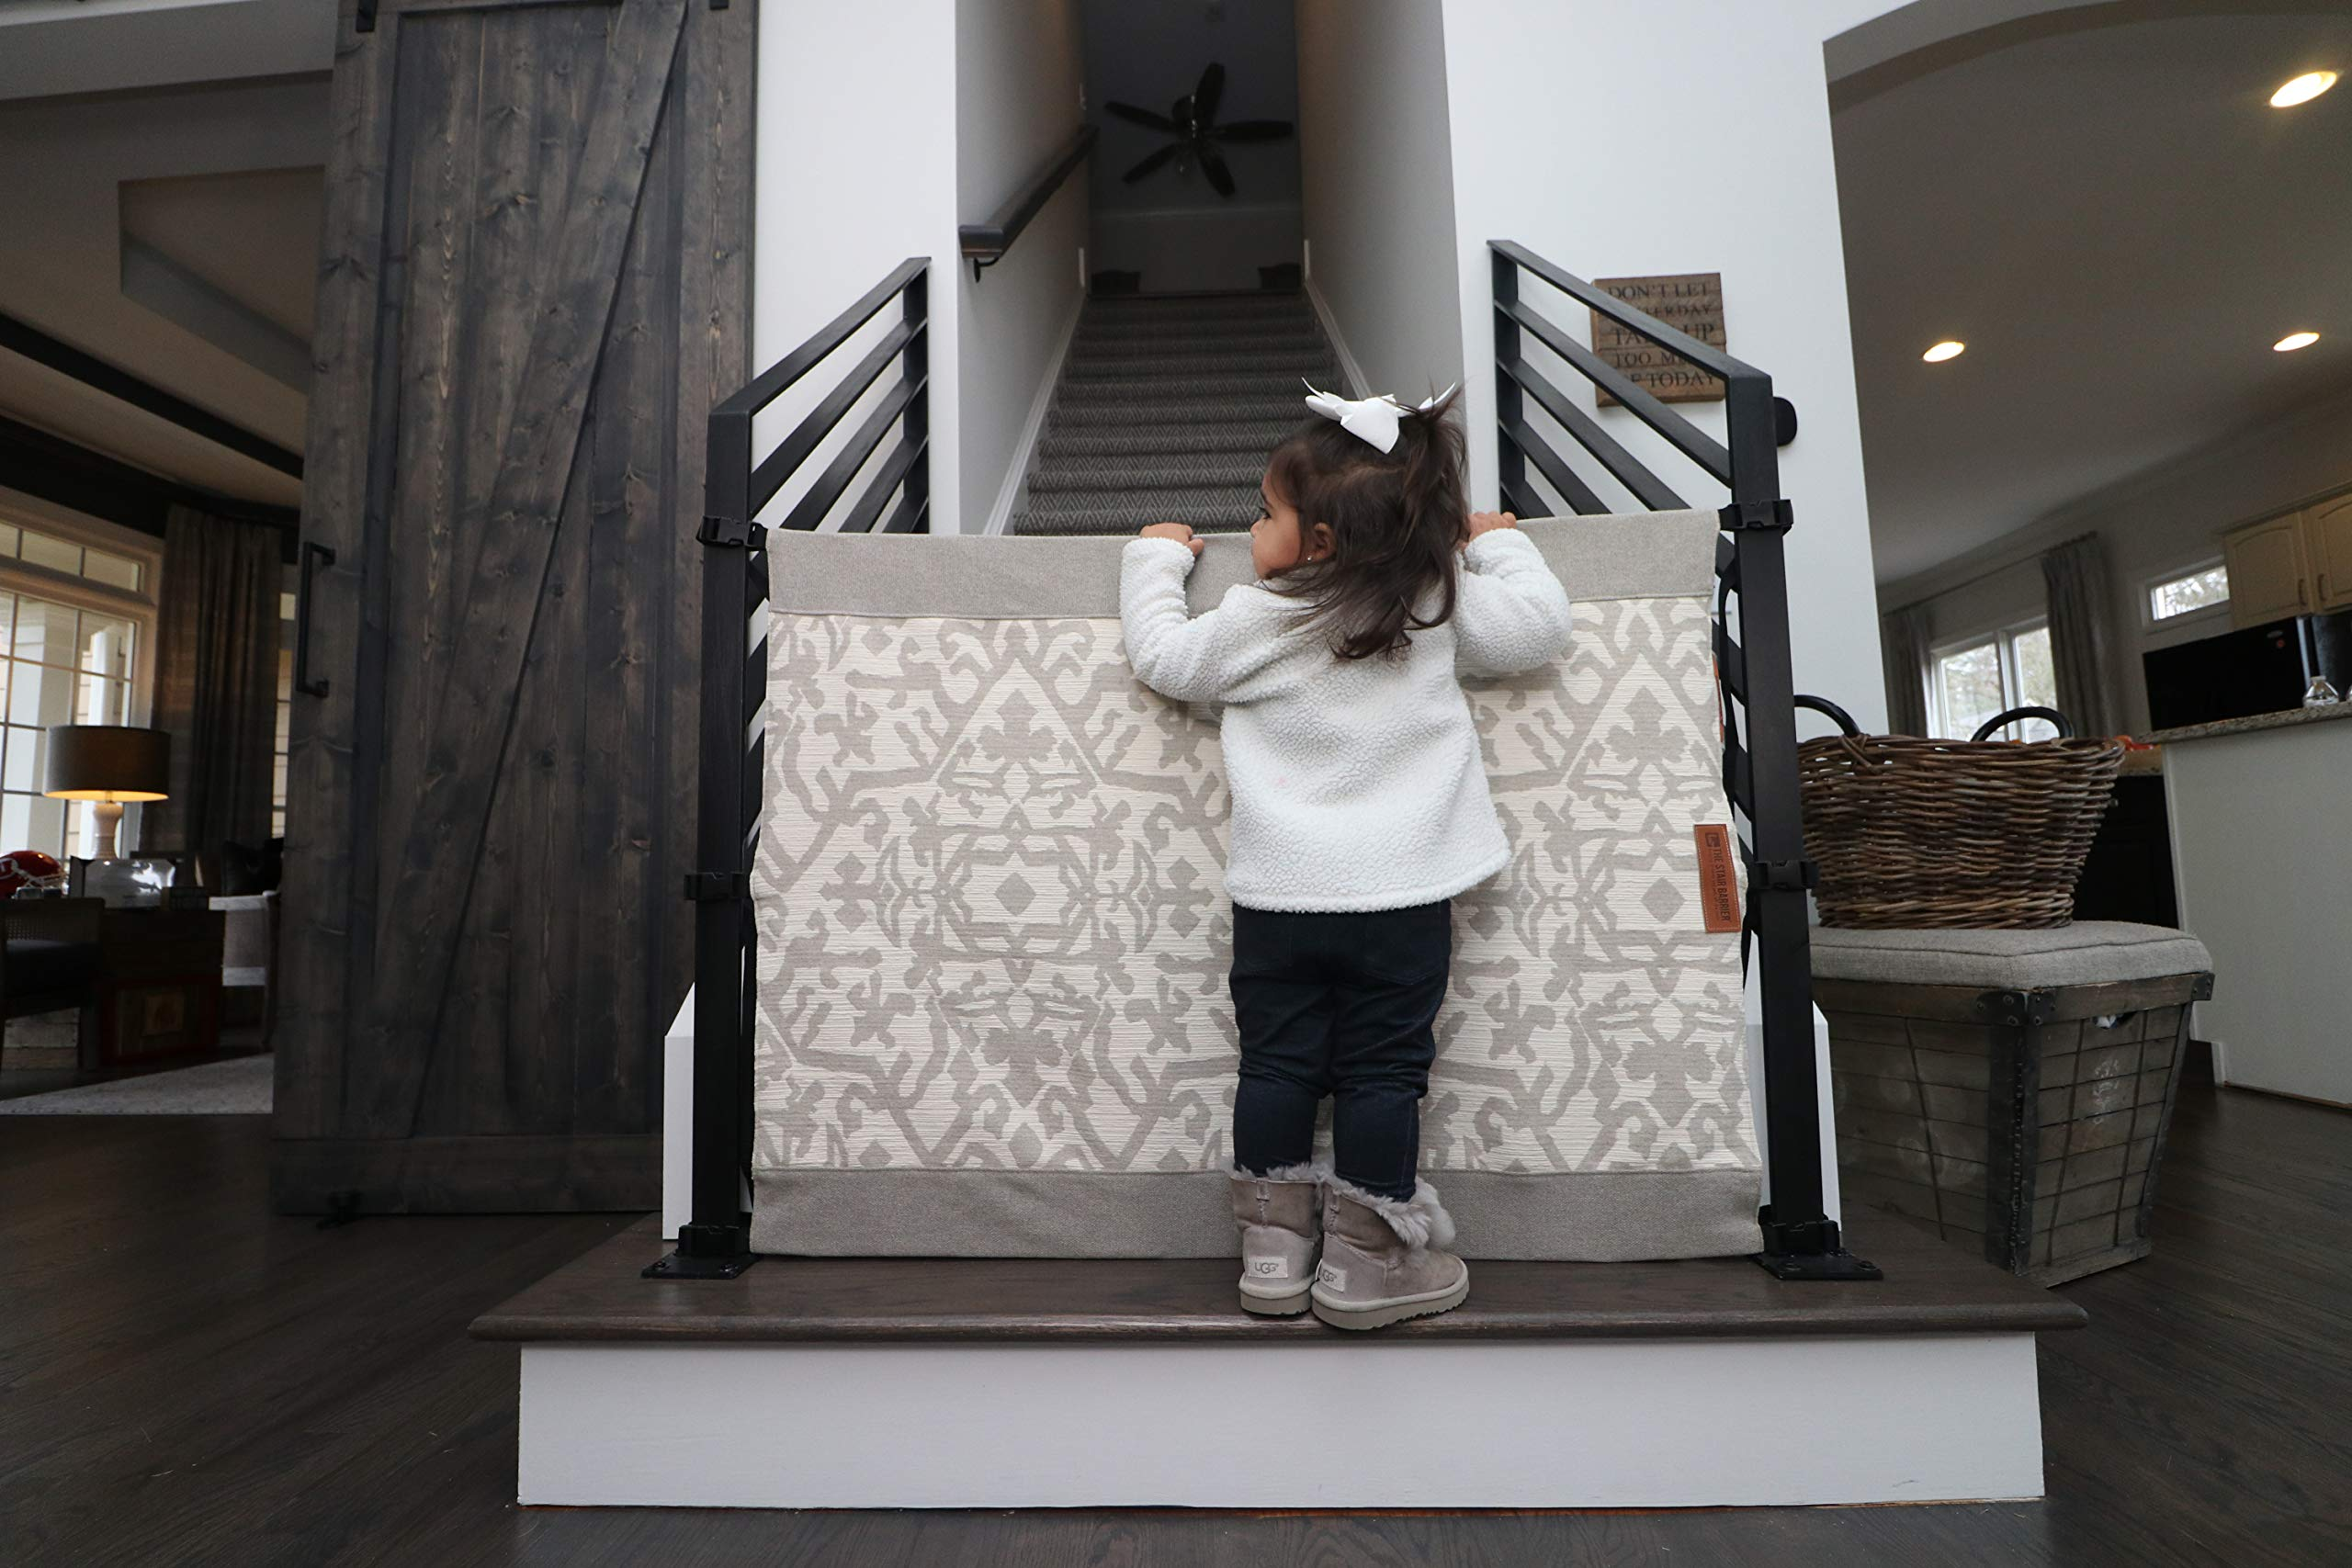 The Stair Barrier Baby and Pet Gate: No-Drill Portable Banister to Banister Baby Gates & Travel Bag - Safety Gates for Kids or Dogs - Fabric Baby Gate for Stairs with Banisters, New 2019 by THE STAIR BARRIER KEEPING CHILDREN AND PETS OFF THE STAIRS (Image #4)